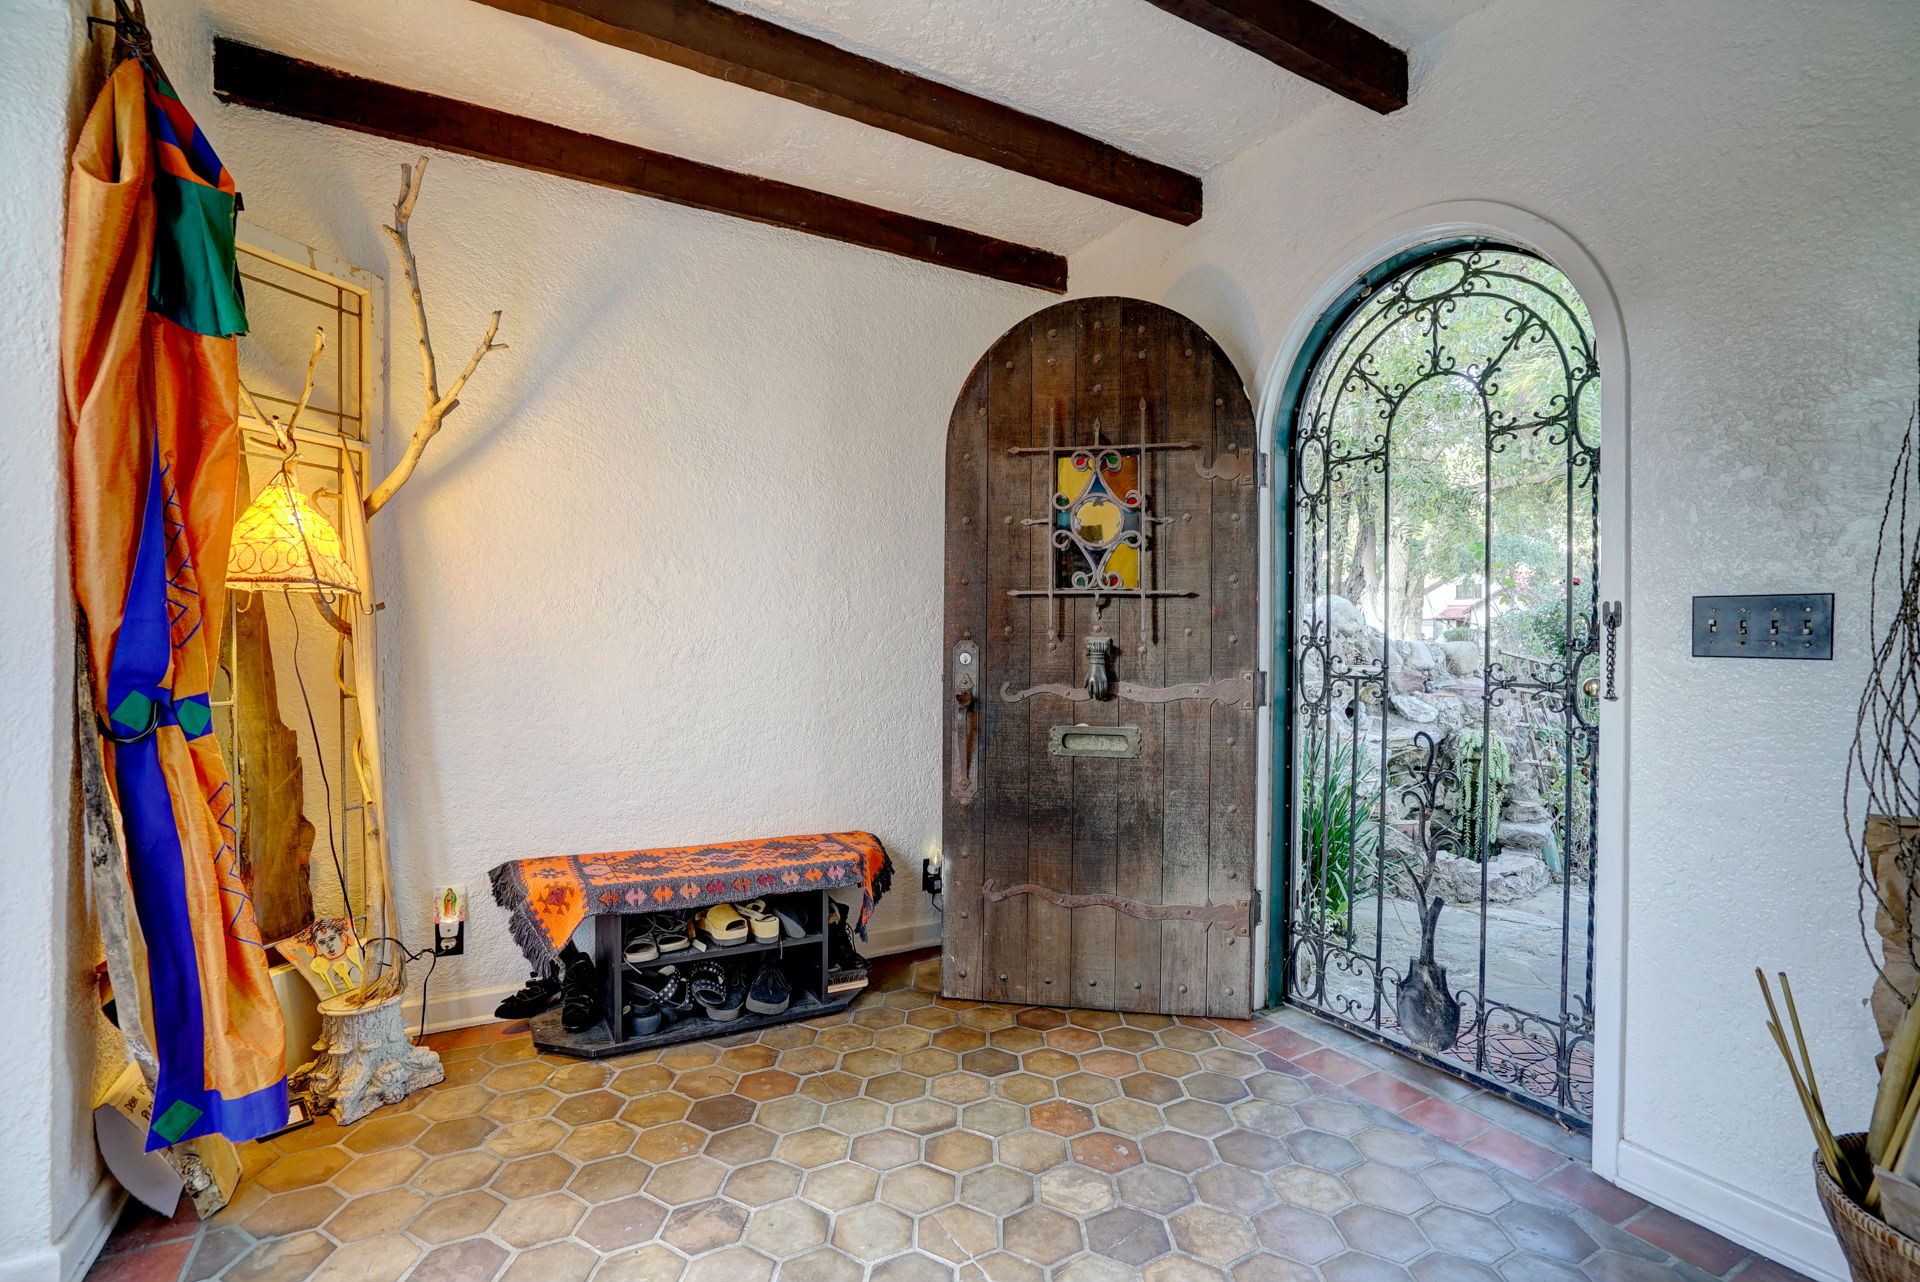 Entry with original ceiling beams and hand-crafted door.